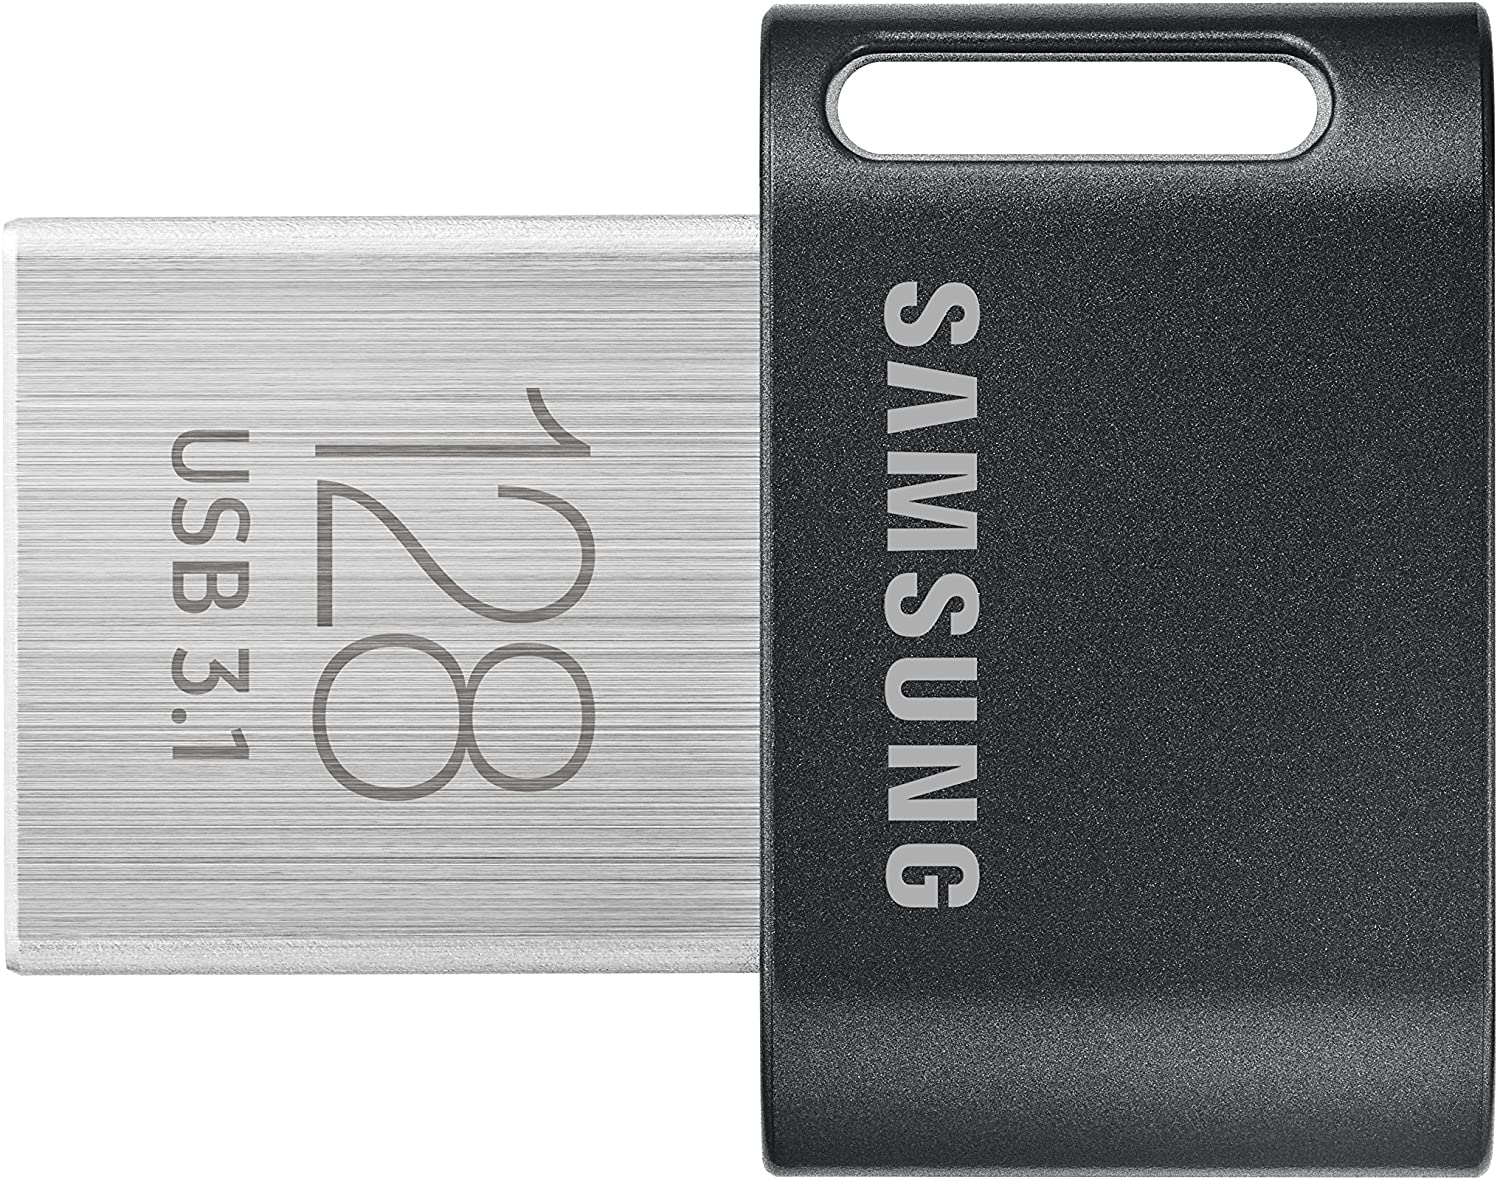 Samsung Fit Plus, Best USB Flash Drive 2020